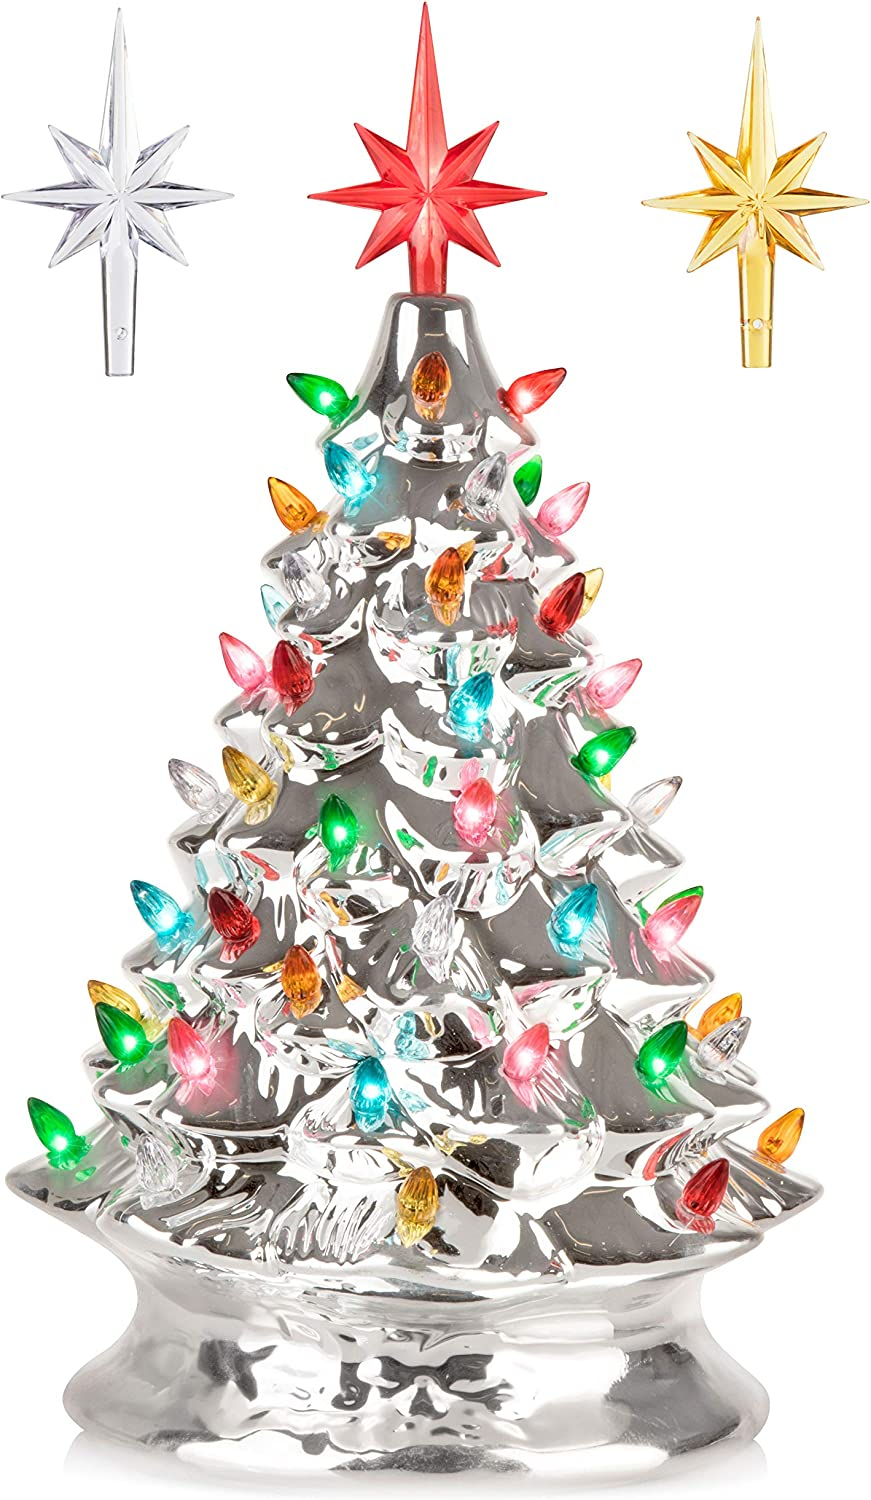 RJ Legend 15-Inch Silver Christmas Mini Ceramic Tree – Festive Lighted Christmas Tree Décor – Vintage Tabletop Christmas Decorations – Retro Winter Tree - Shiny Holidays Décor